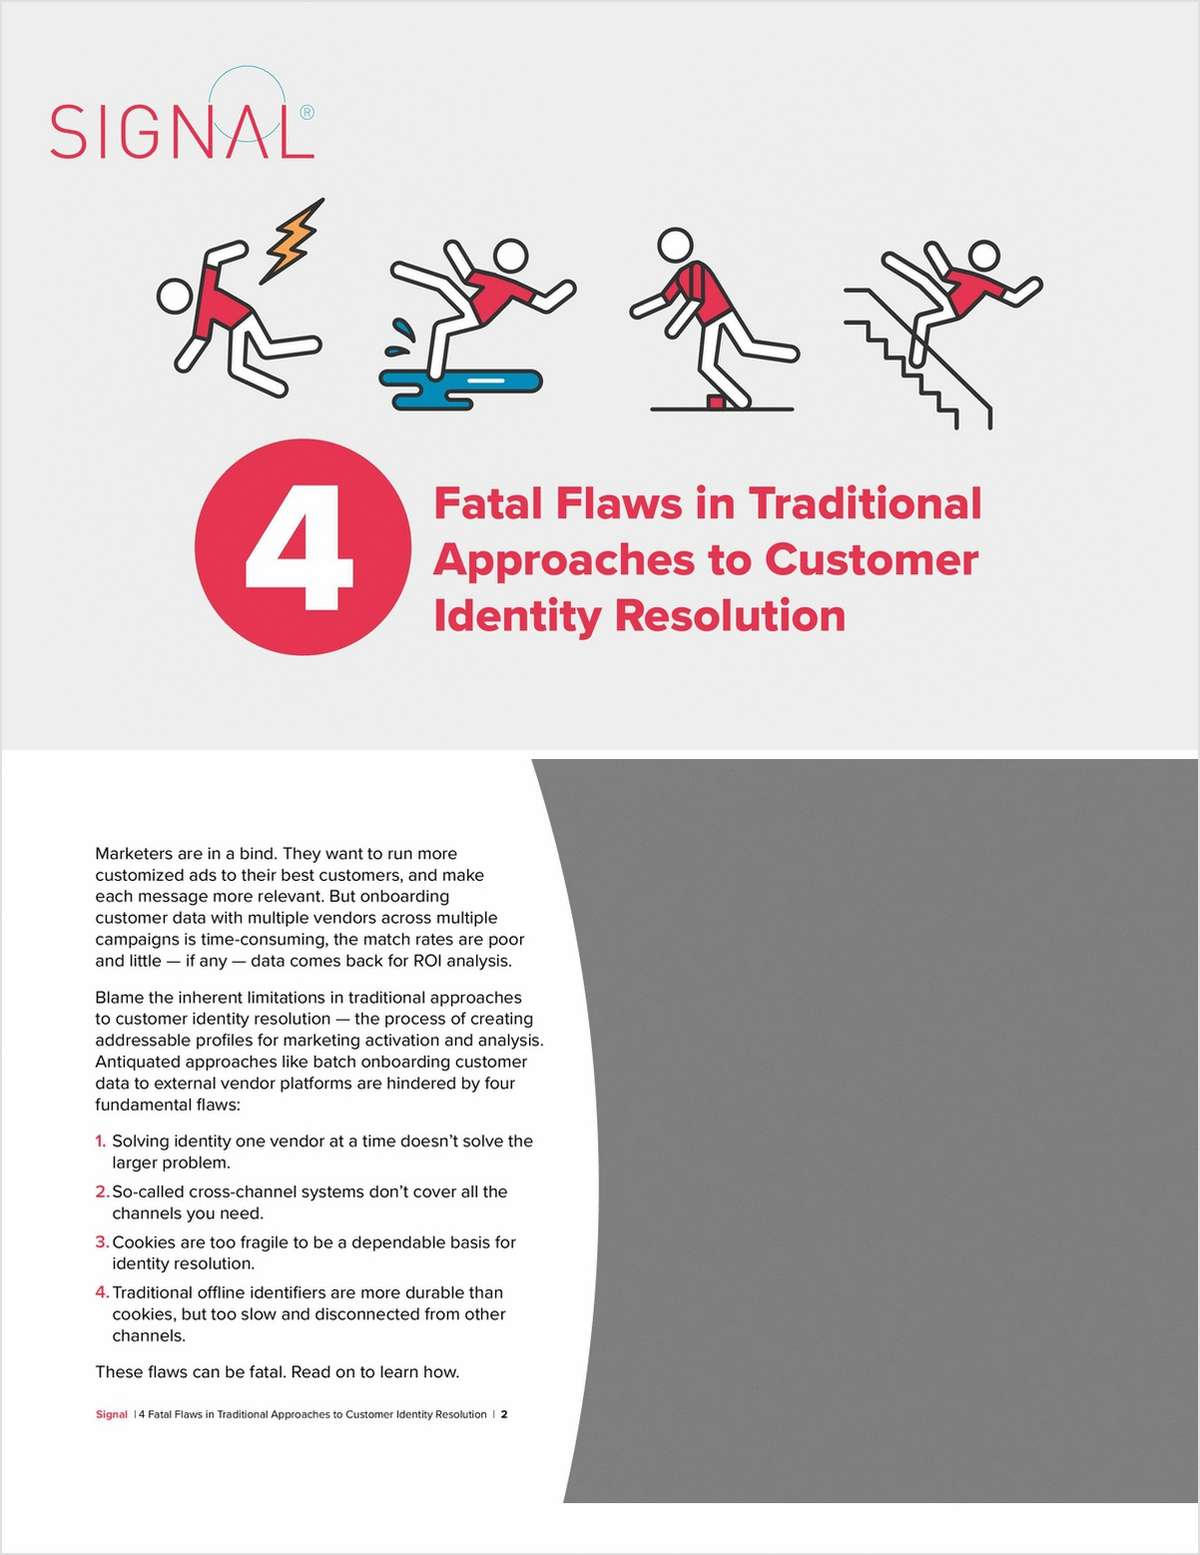 4 Fatal Flaws in Traditional Approaches to Customer Identity Resolution